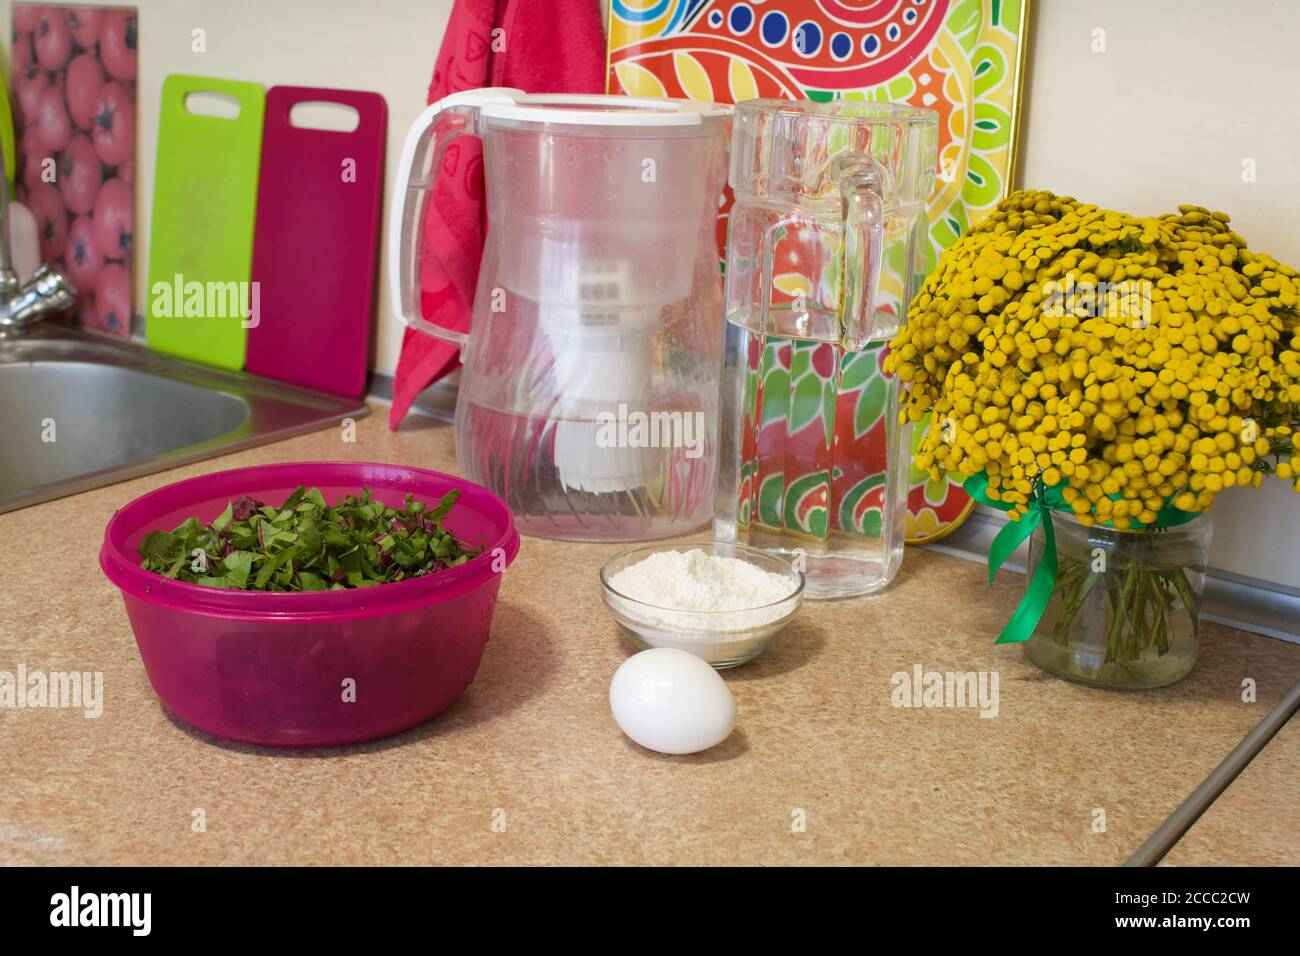 Preparation of cutlets from beet tops. Container with crushed beet tops, flour and chicken egg on the countertop. Regional food. Stock Photo